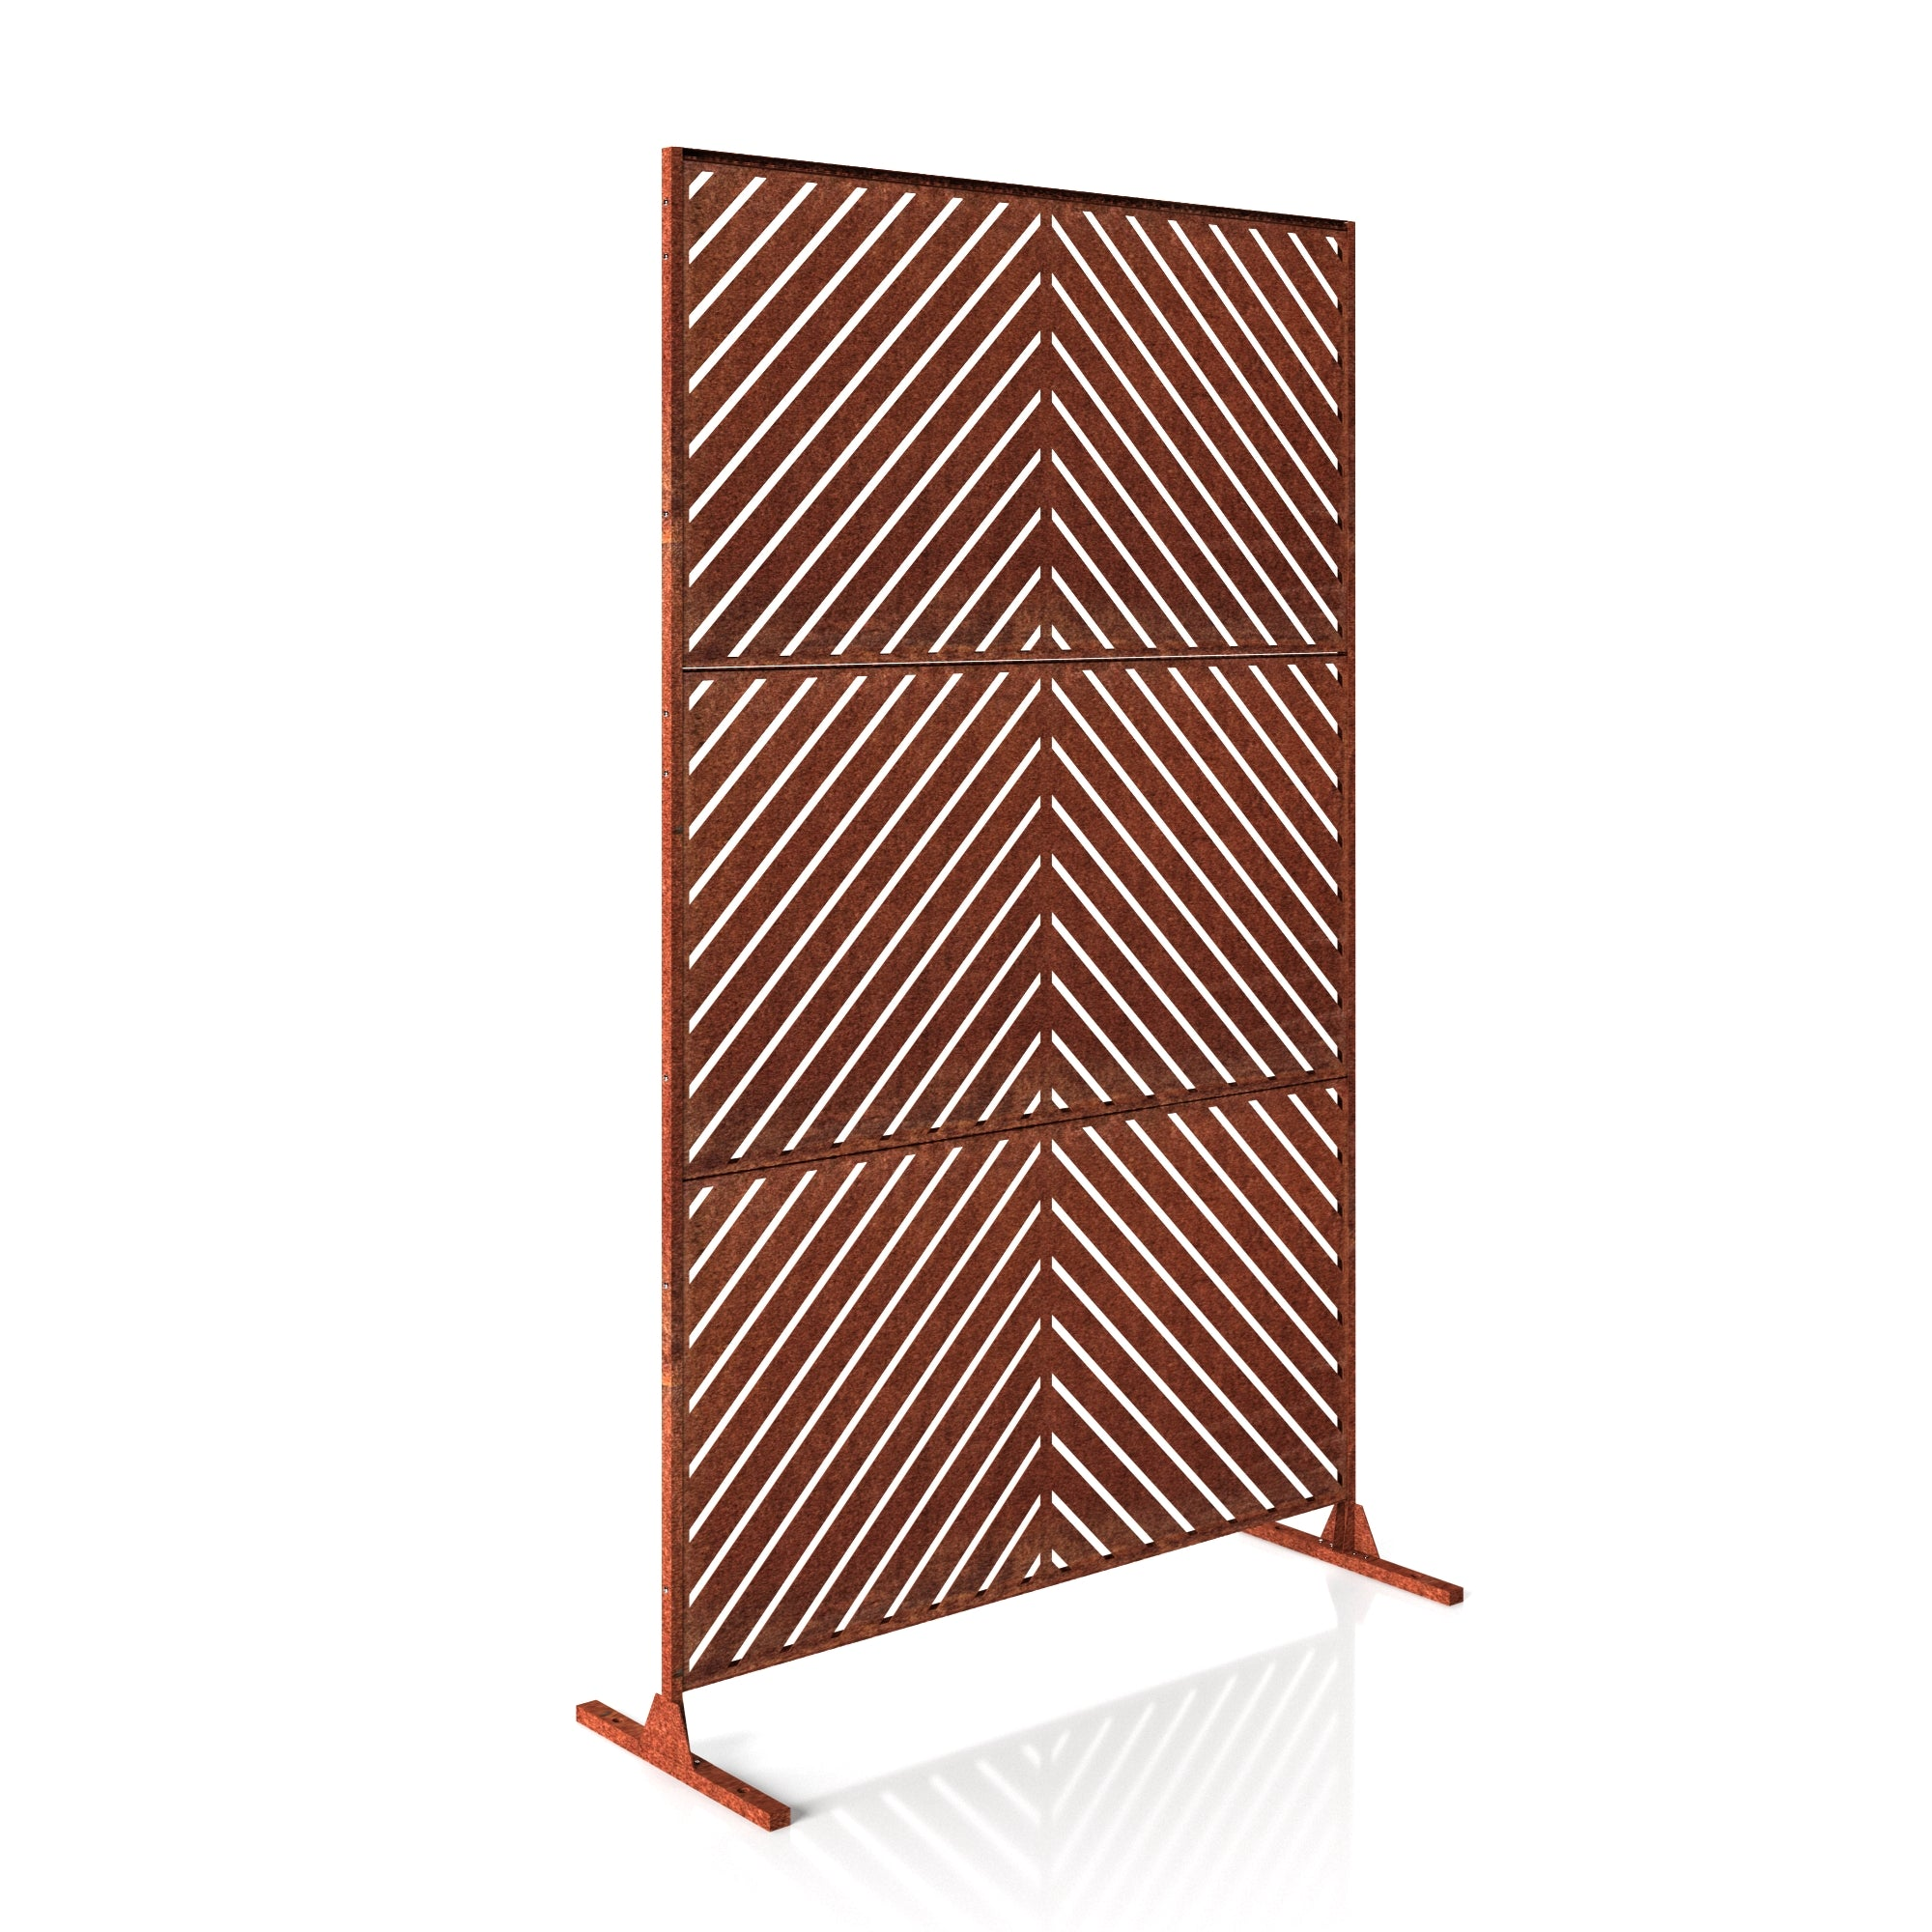 Veradek Corten Steel Screen Set - Arrow